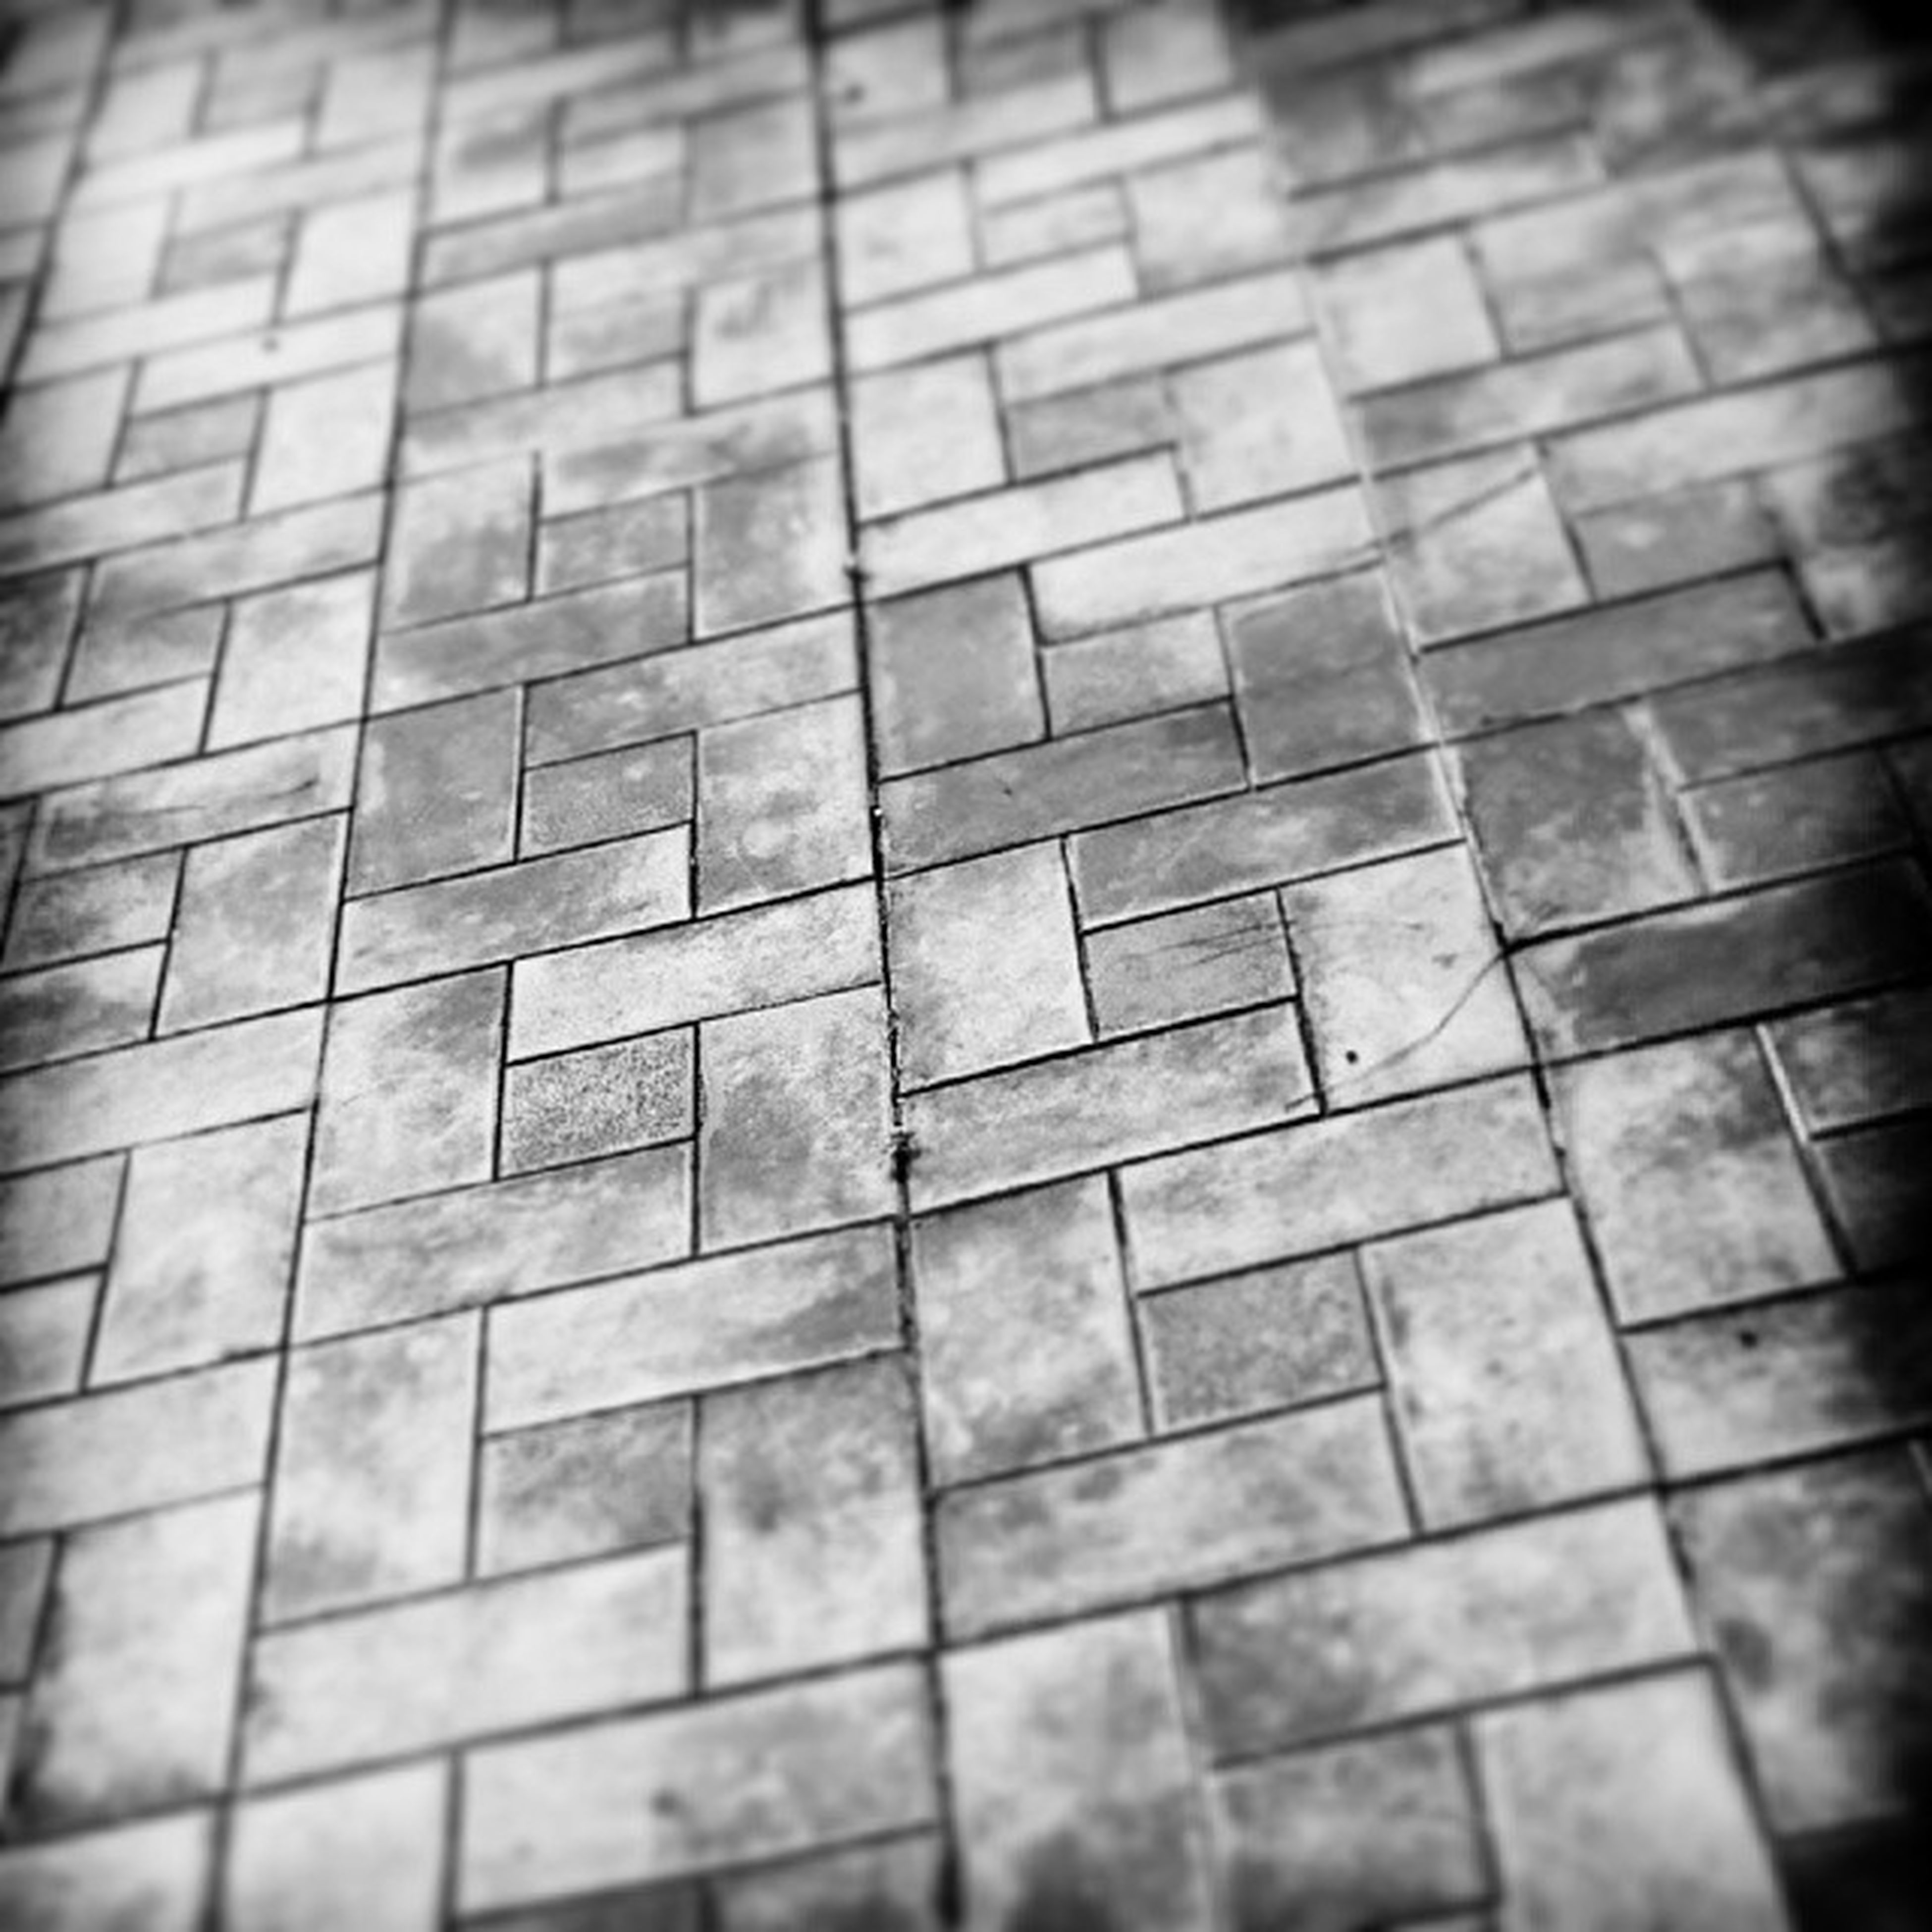 full frame, backgrounds, pattern, indoors, textured, square shape, close-up, tiled floor, geometric shape, flooring, wall - building feature, no people, tile, selective focus, high angle view, day, design, repetition, built structure, shape